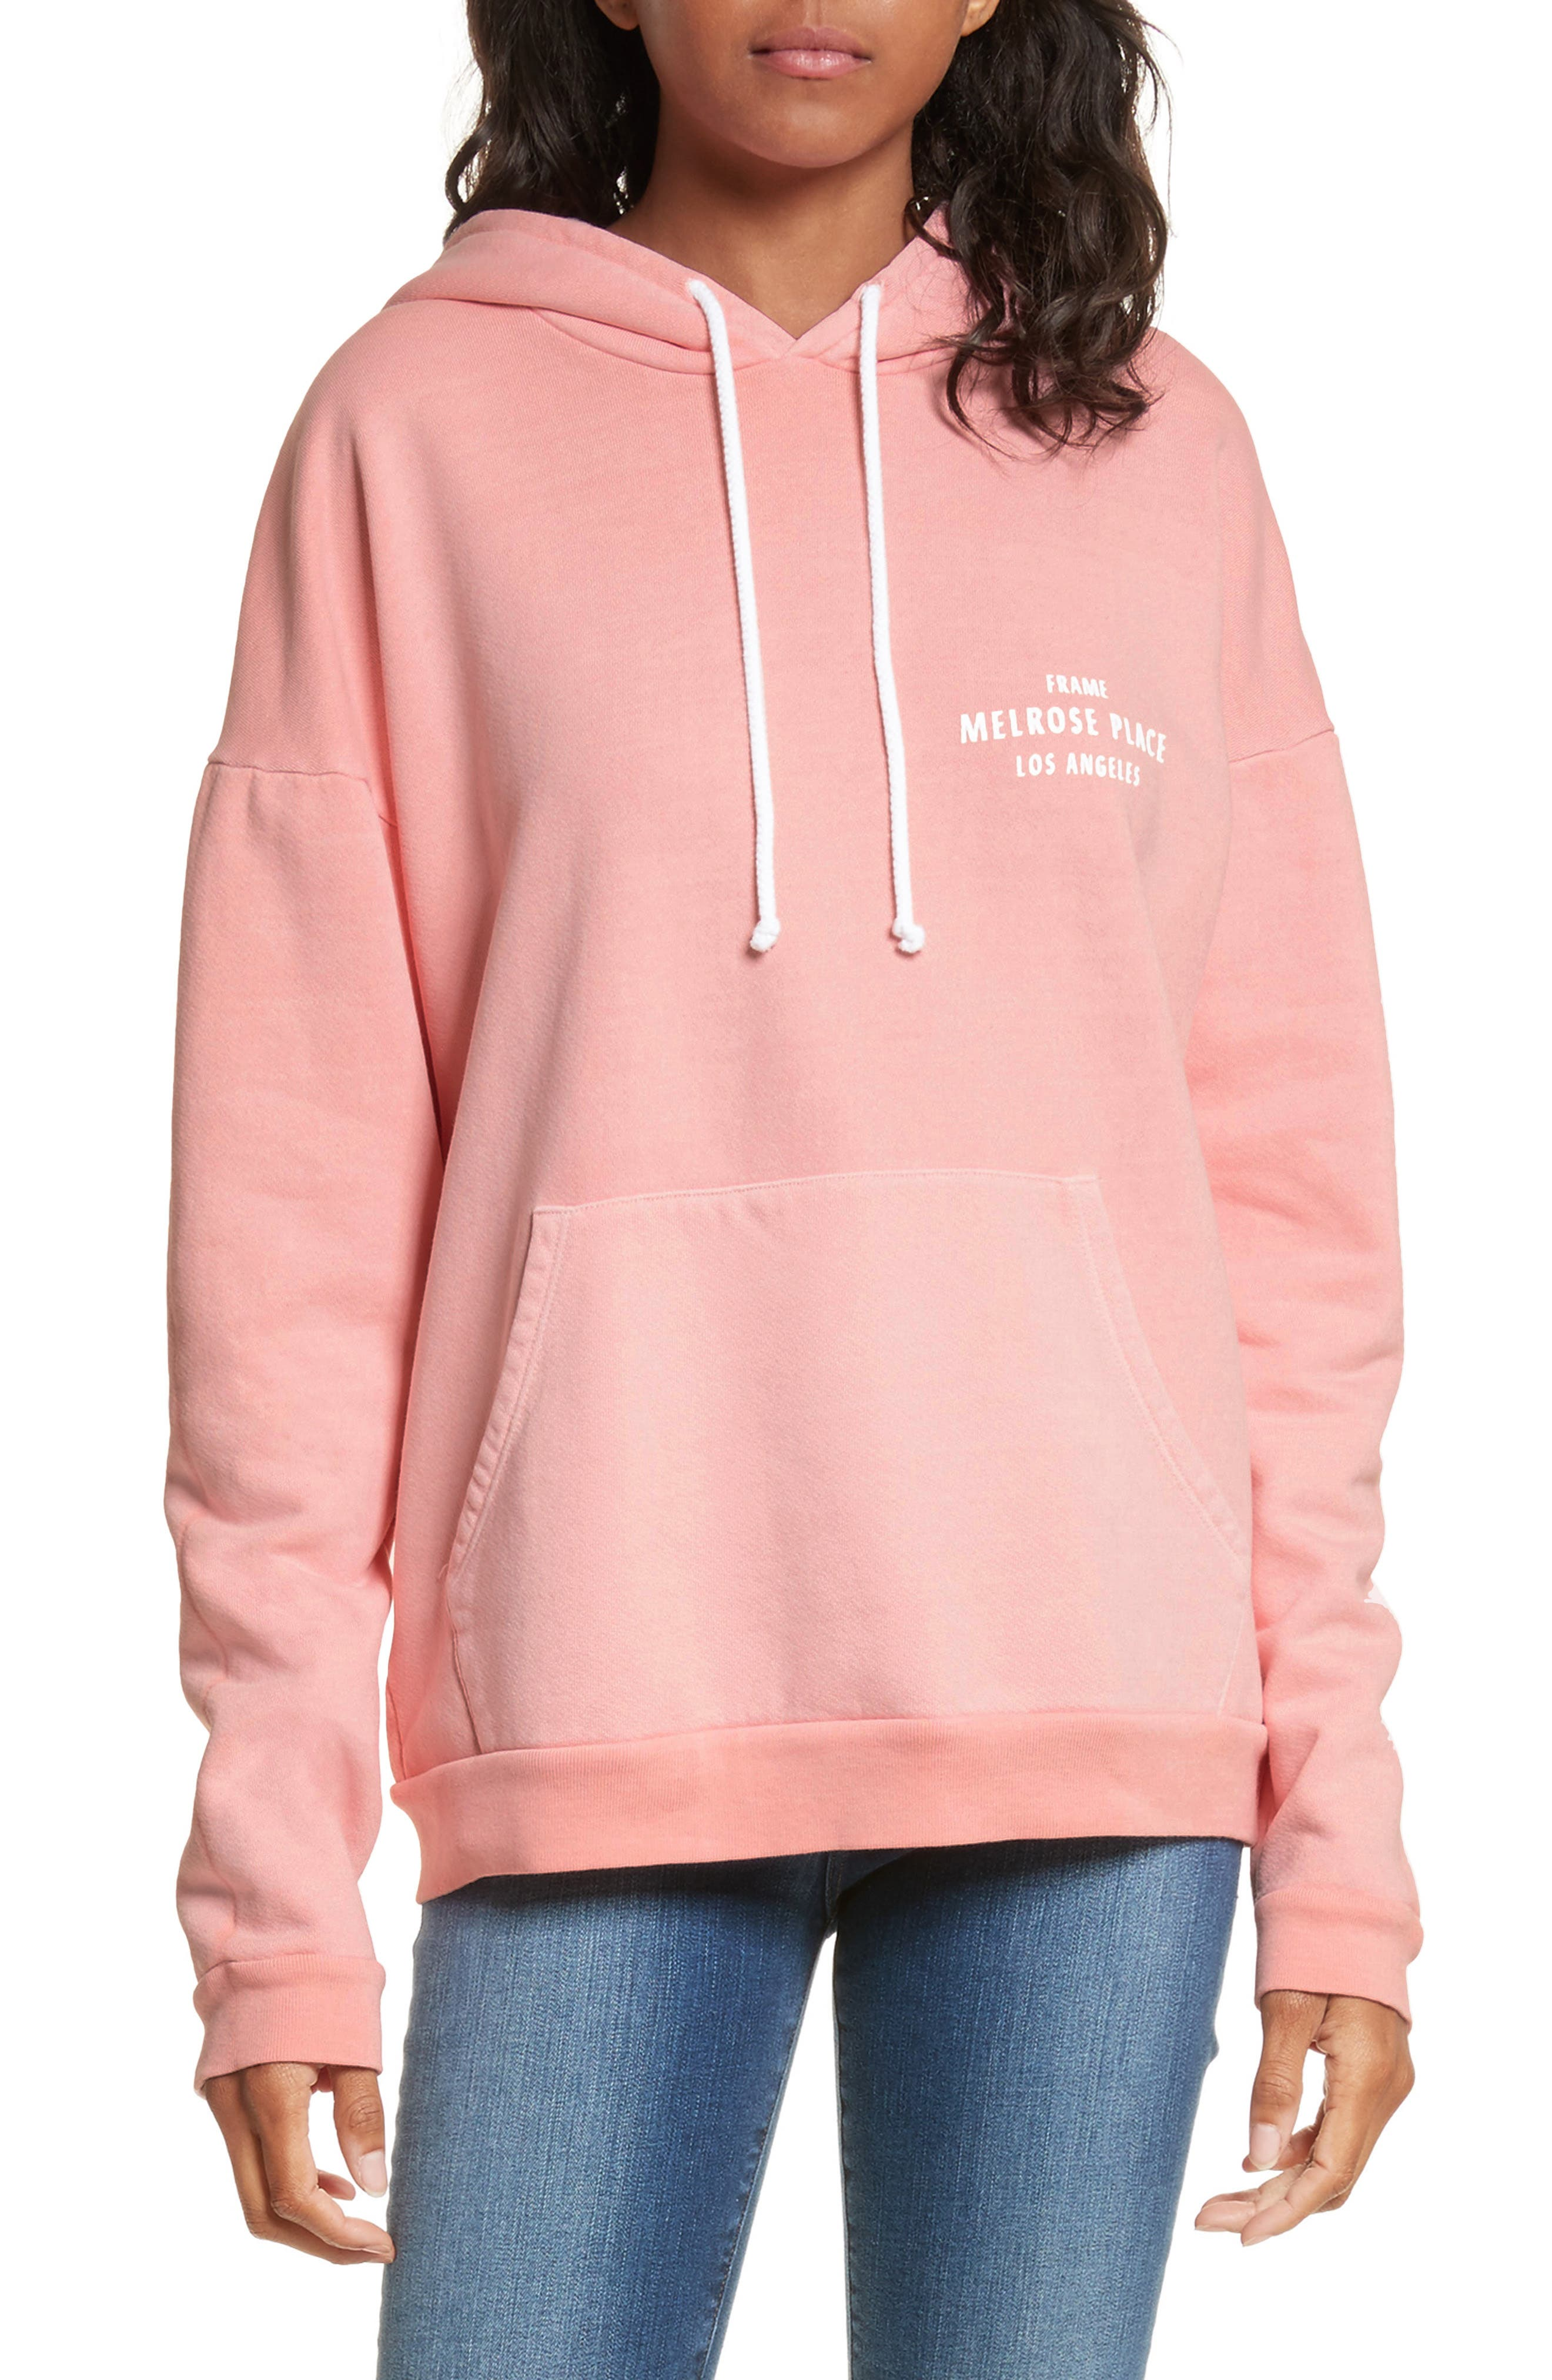 Oversize Hoodie,                             Main thumbnail 1, color,                             Faded Light Pink